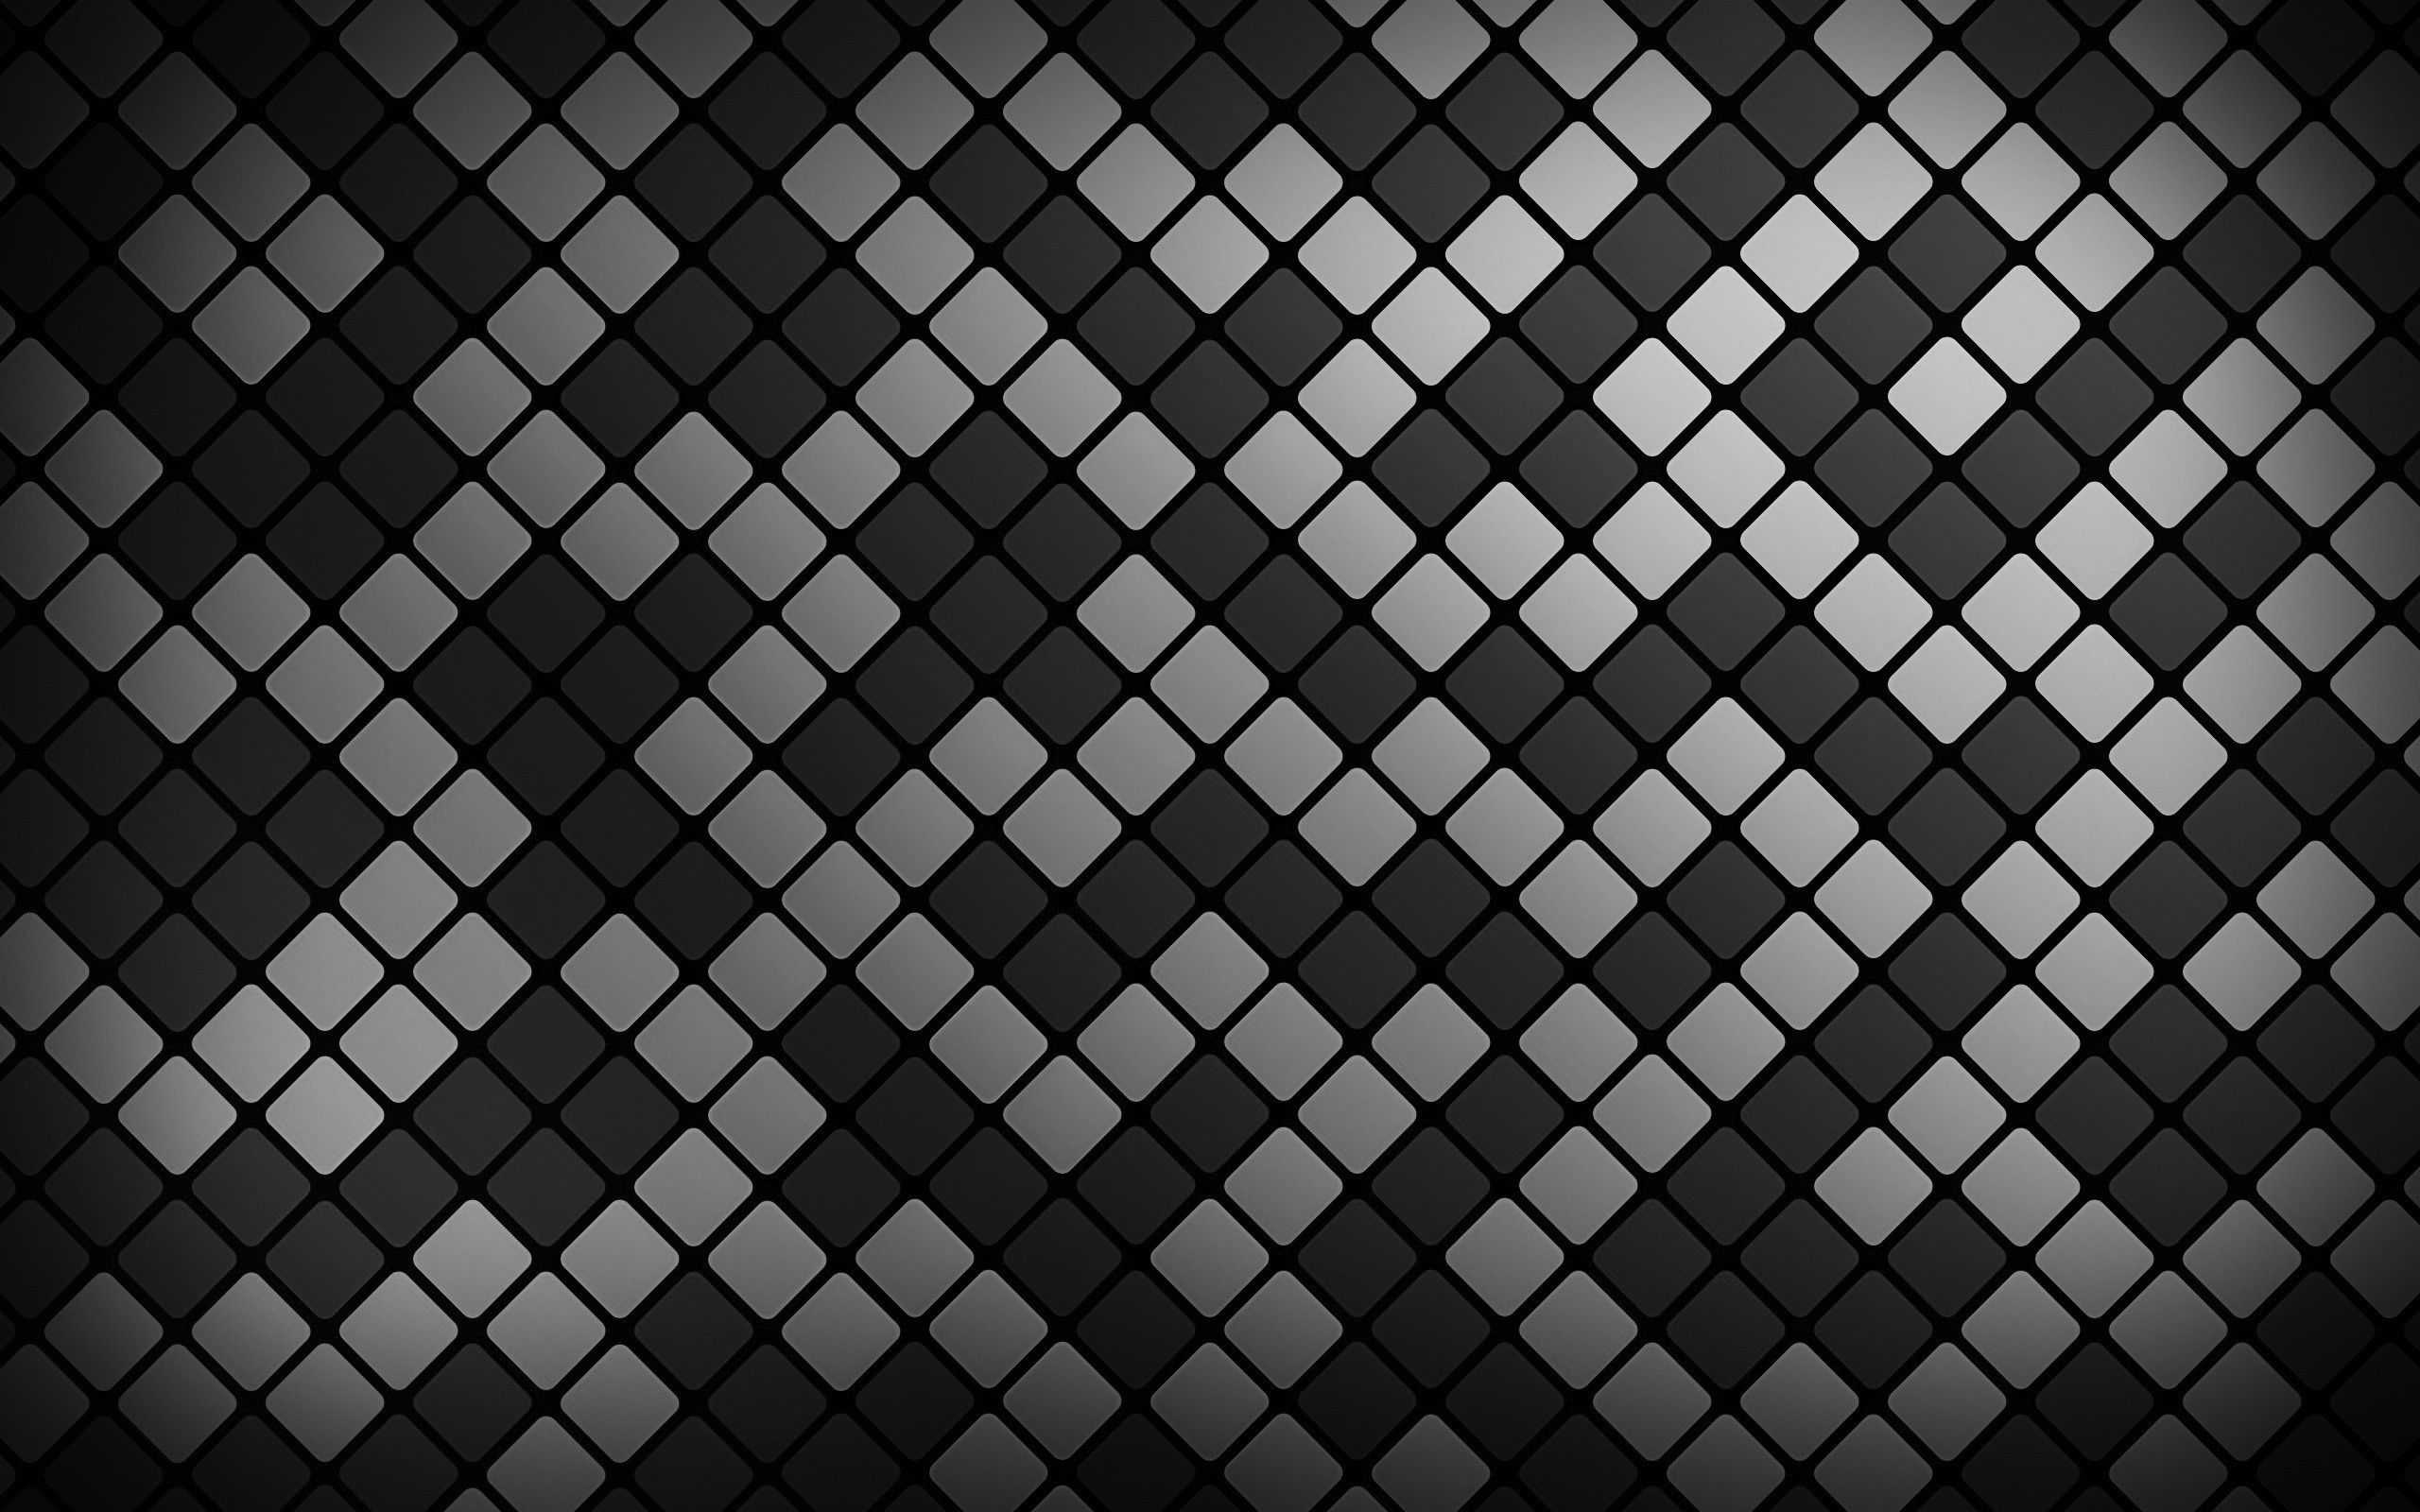 Square Checker Website Background